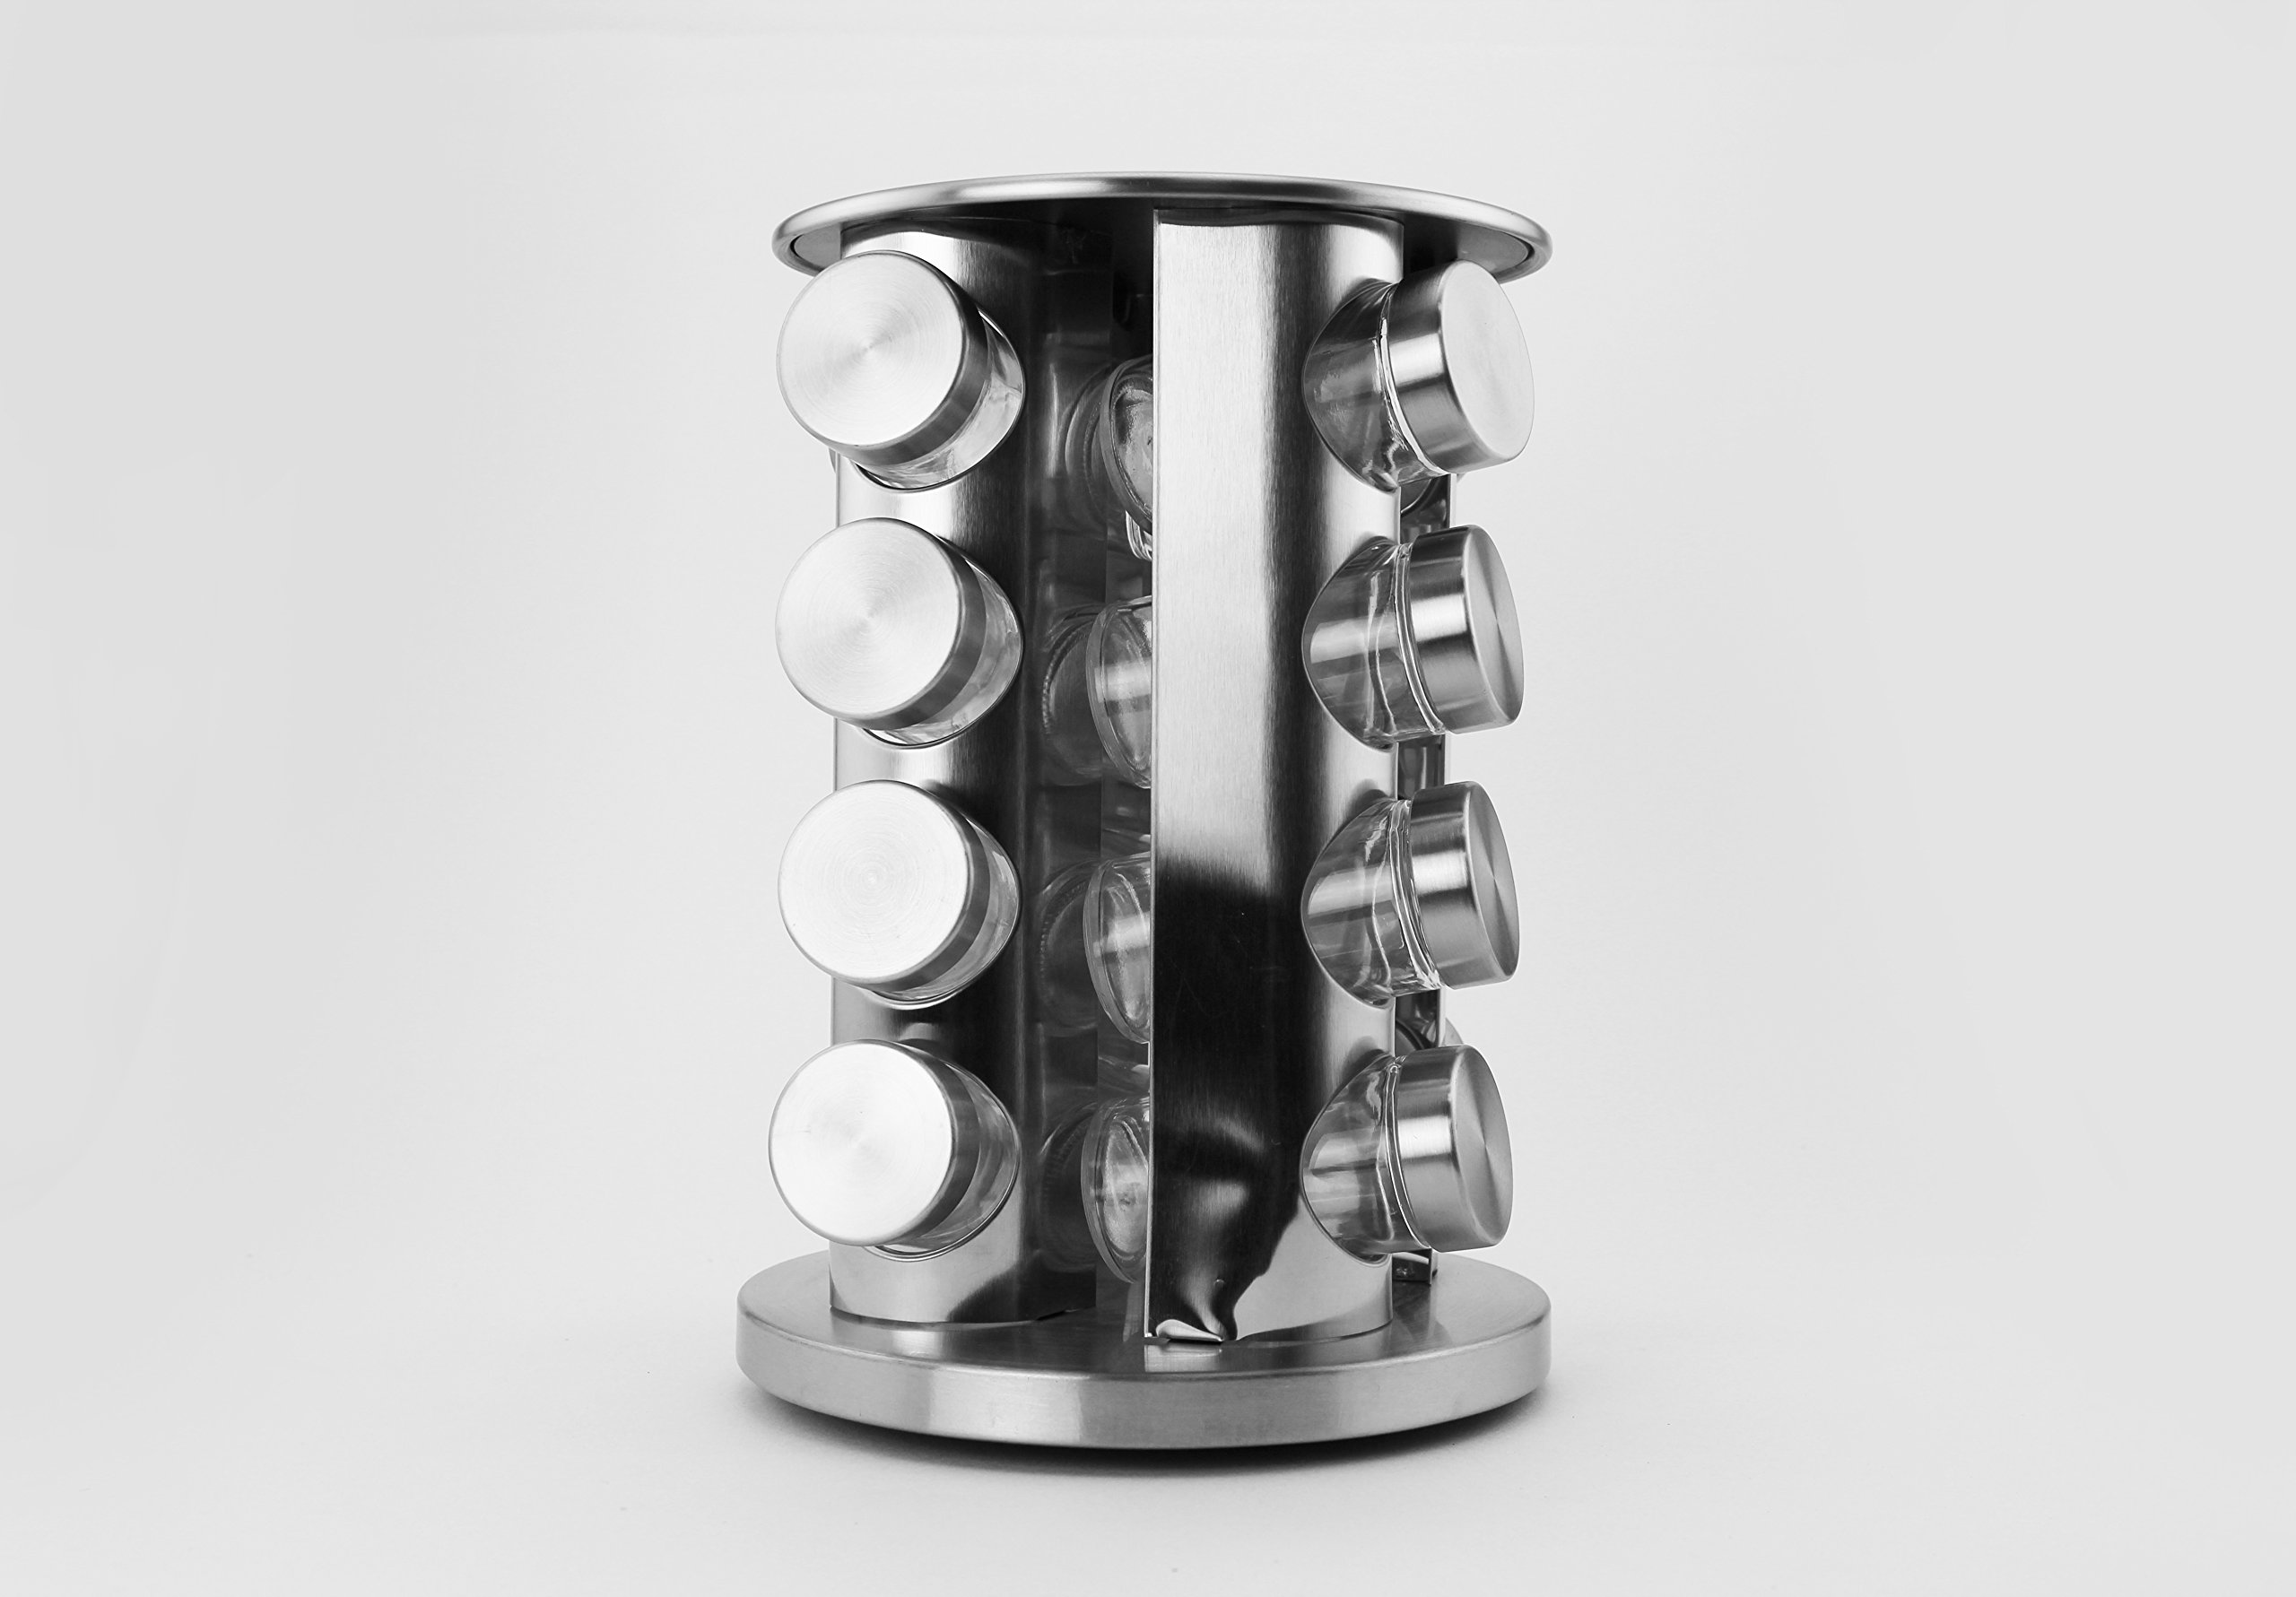 Tytroy 16 Round Spice Jar Steel Spice Rack Stainless Steel Kitchen Organizer for Dry Herbs